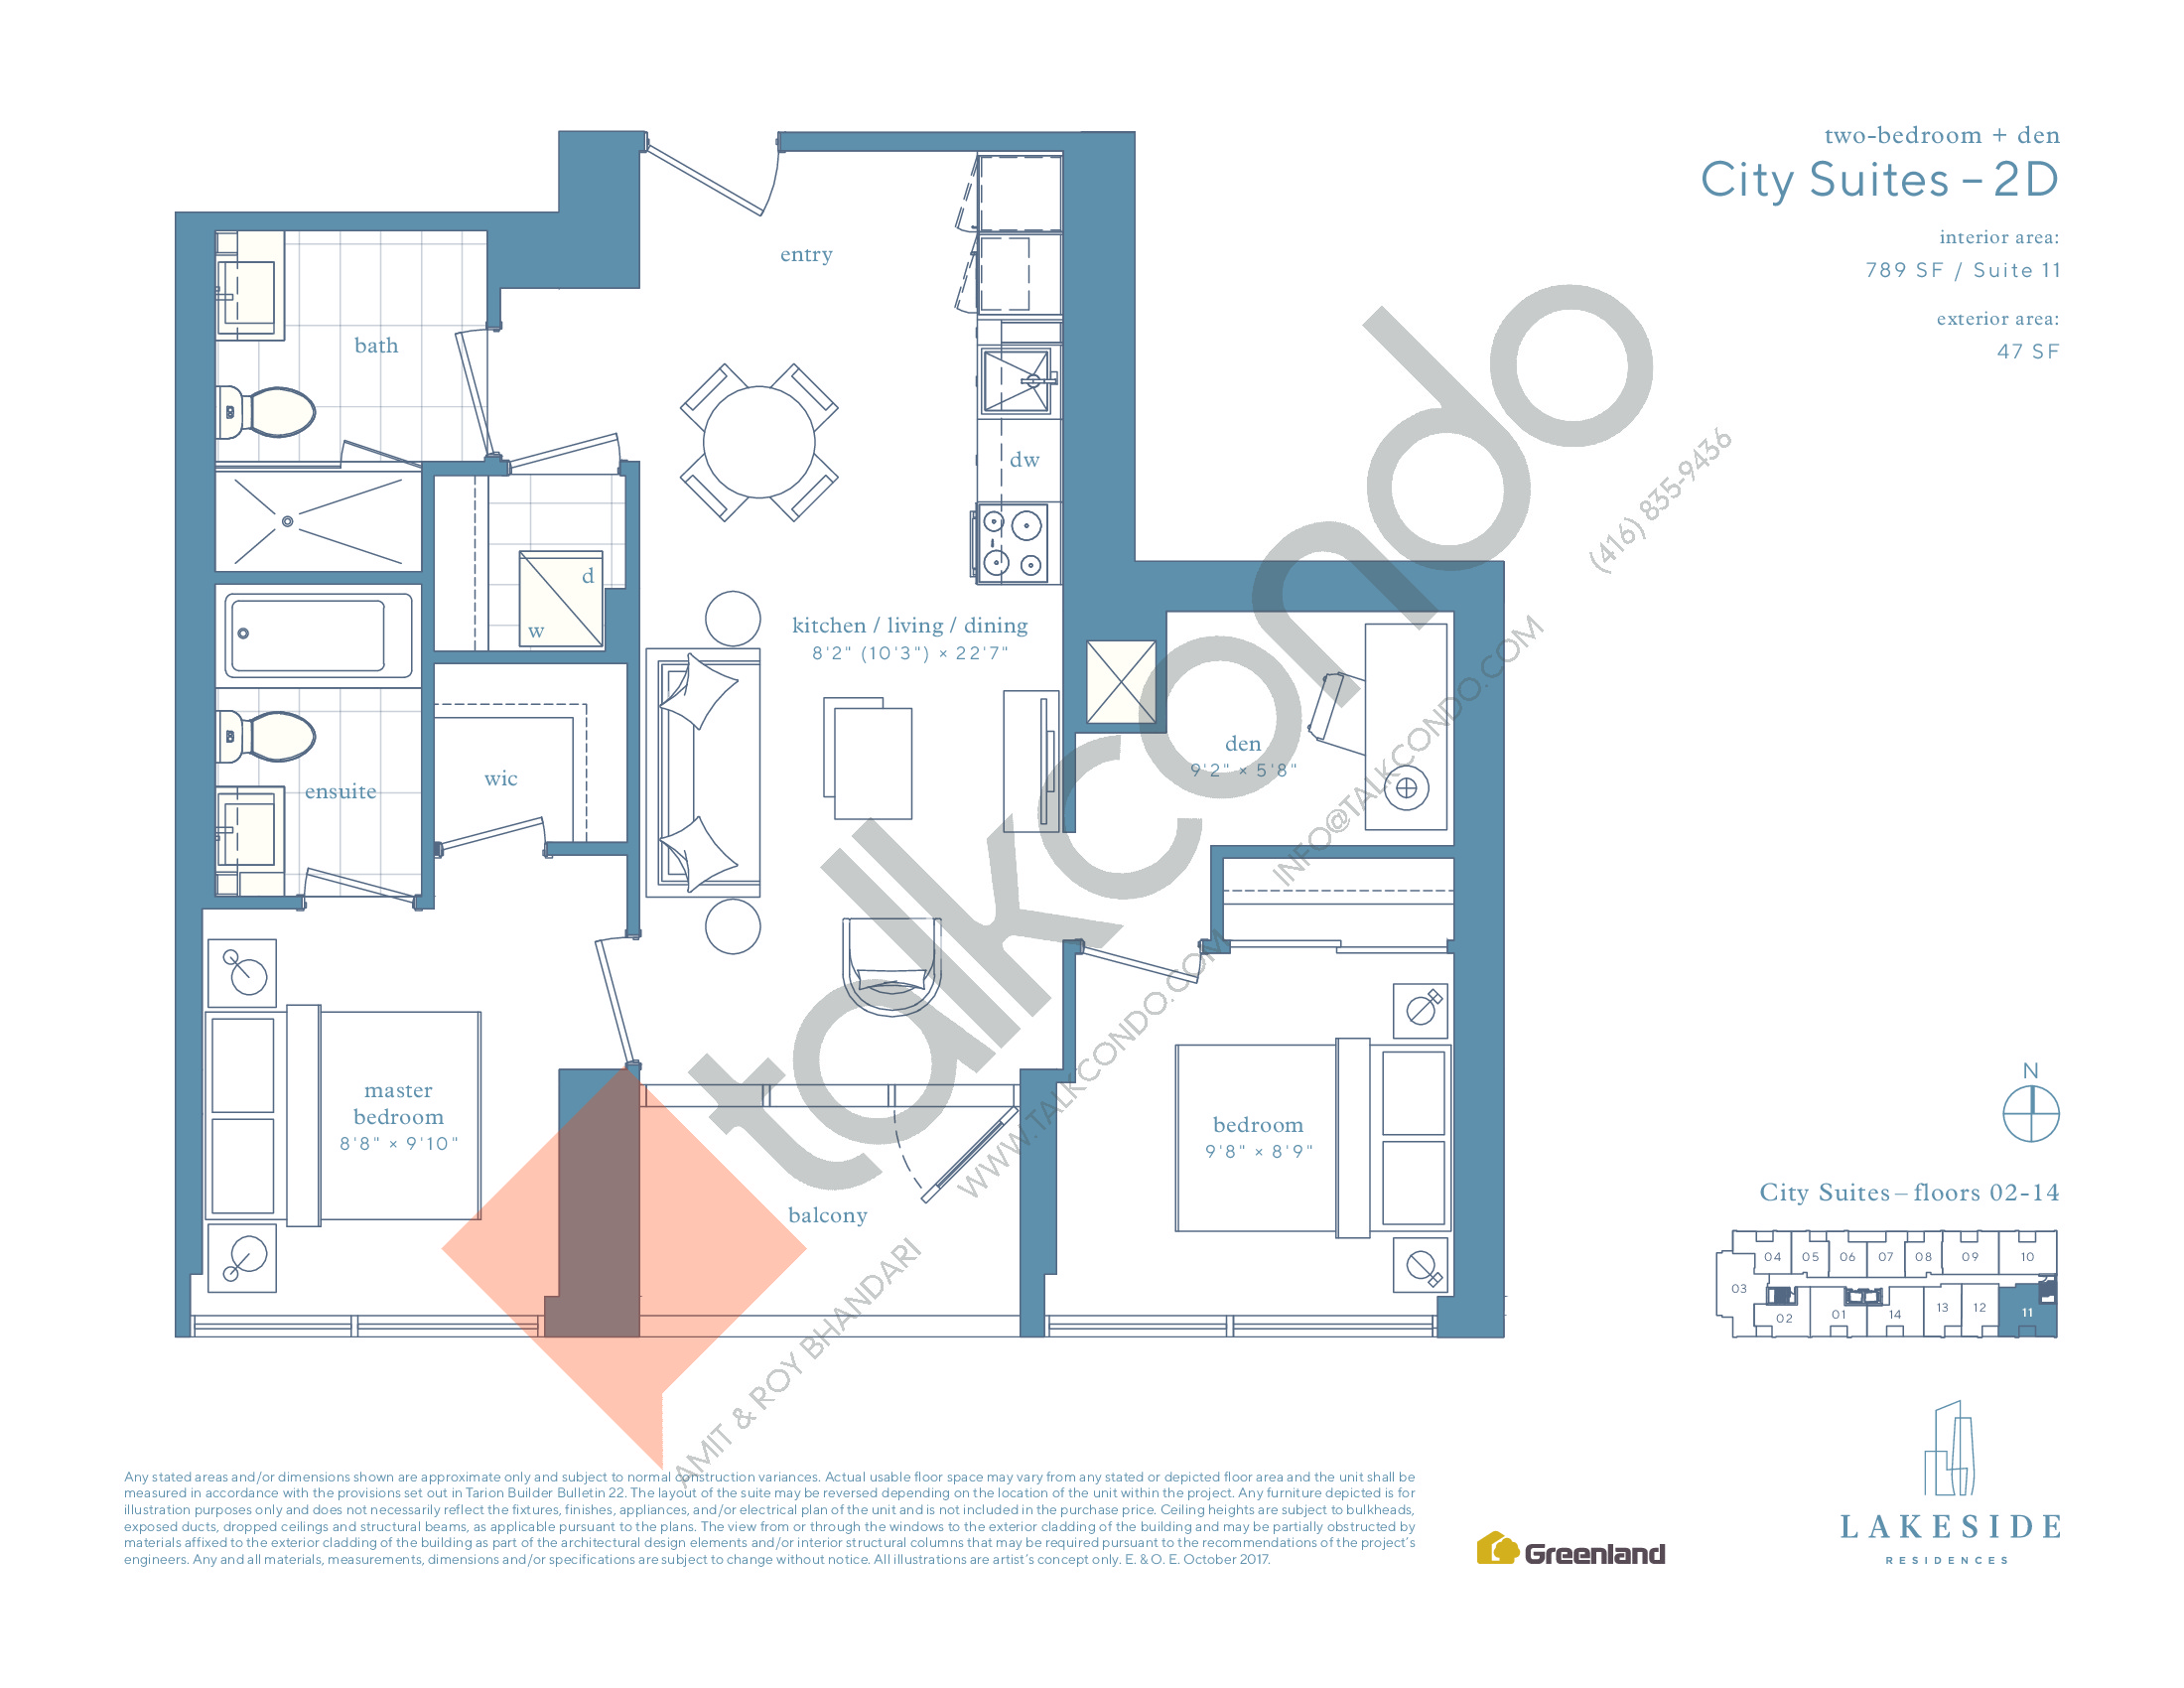 City Suites - 2D Floor Plan at Lakeside Residences - 789 sq.ft